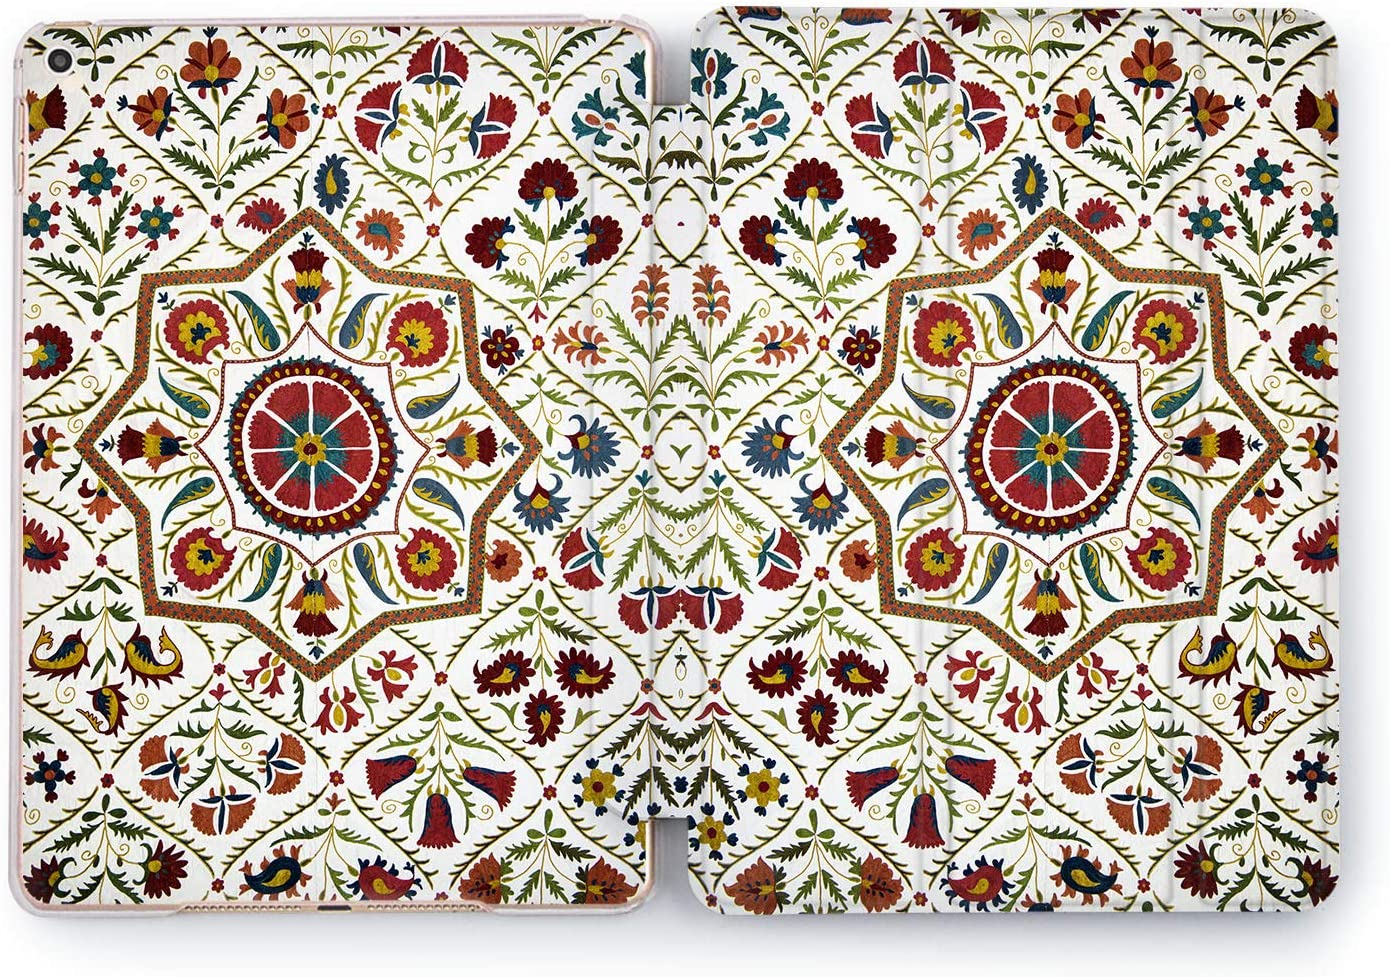 Wonder Wild Oriental Print Apple iPad 2 3 4 Pro Case 9.7 11 inch Mini 1 2 3 4 5 Air 2 10.5 12.9 2018 2017 Design 5th 6th Gen Clear Smart Hard Cover Mosaic Ornament Traditional Decor Flowers Abstract